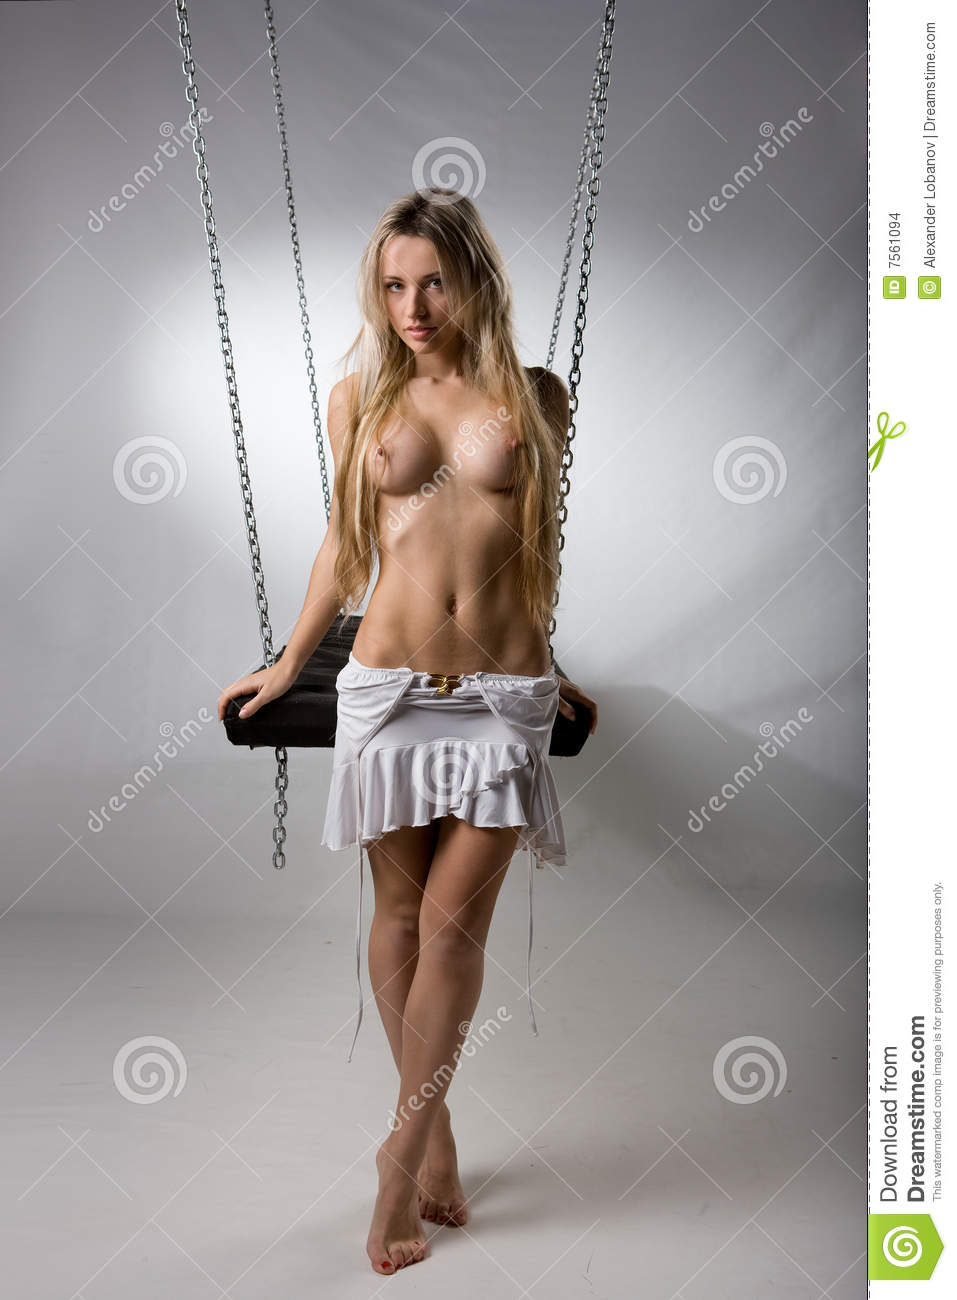 Hot nude women in swing